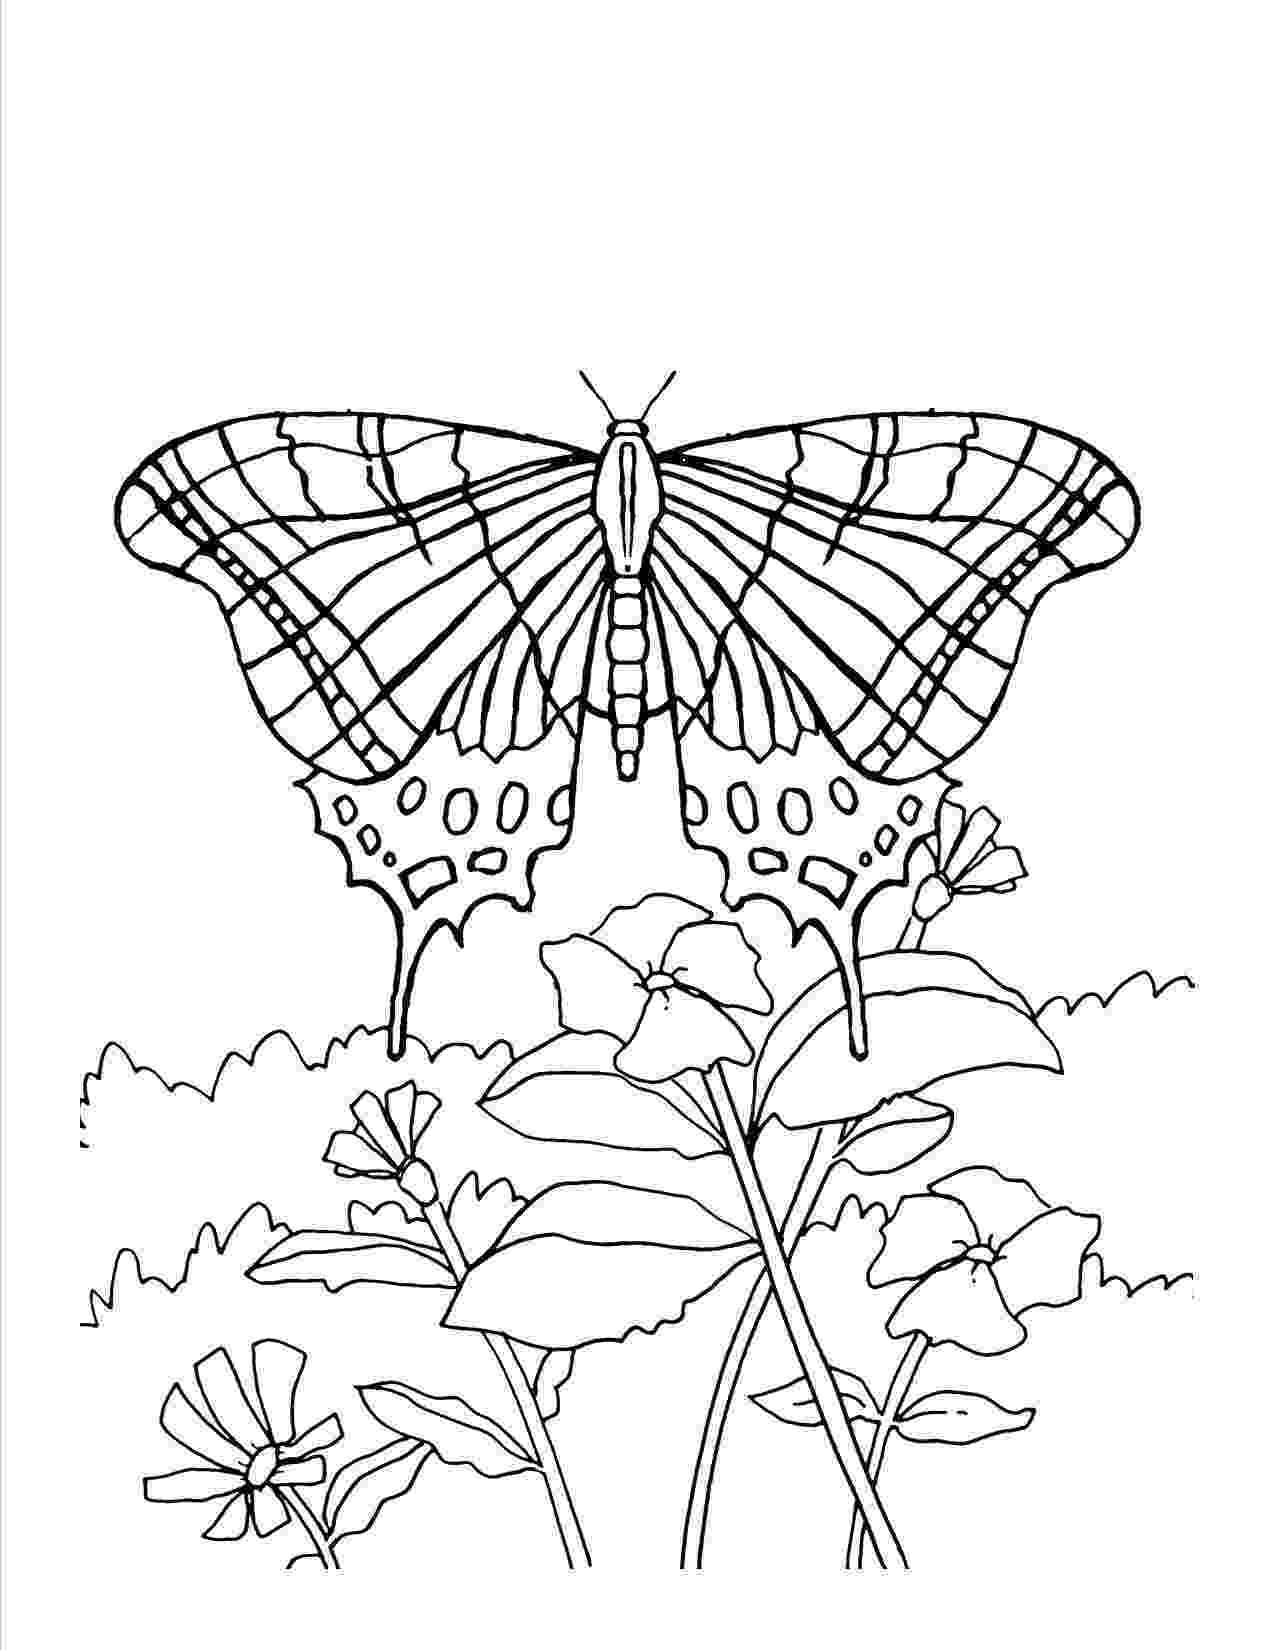 monarch butterfly coloring page monarch butterfly coloring pages to print free coloring coloring butterfly monarch page